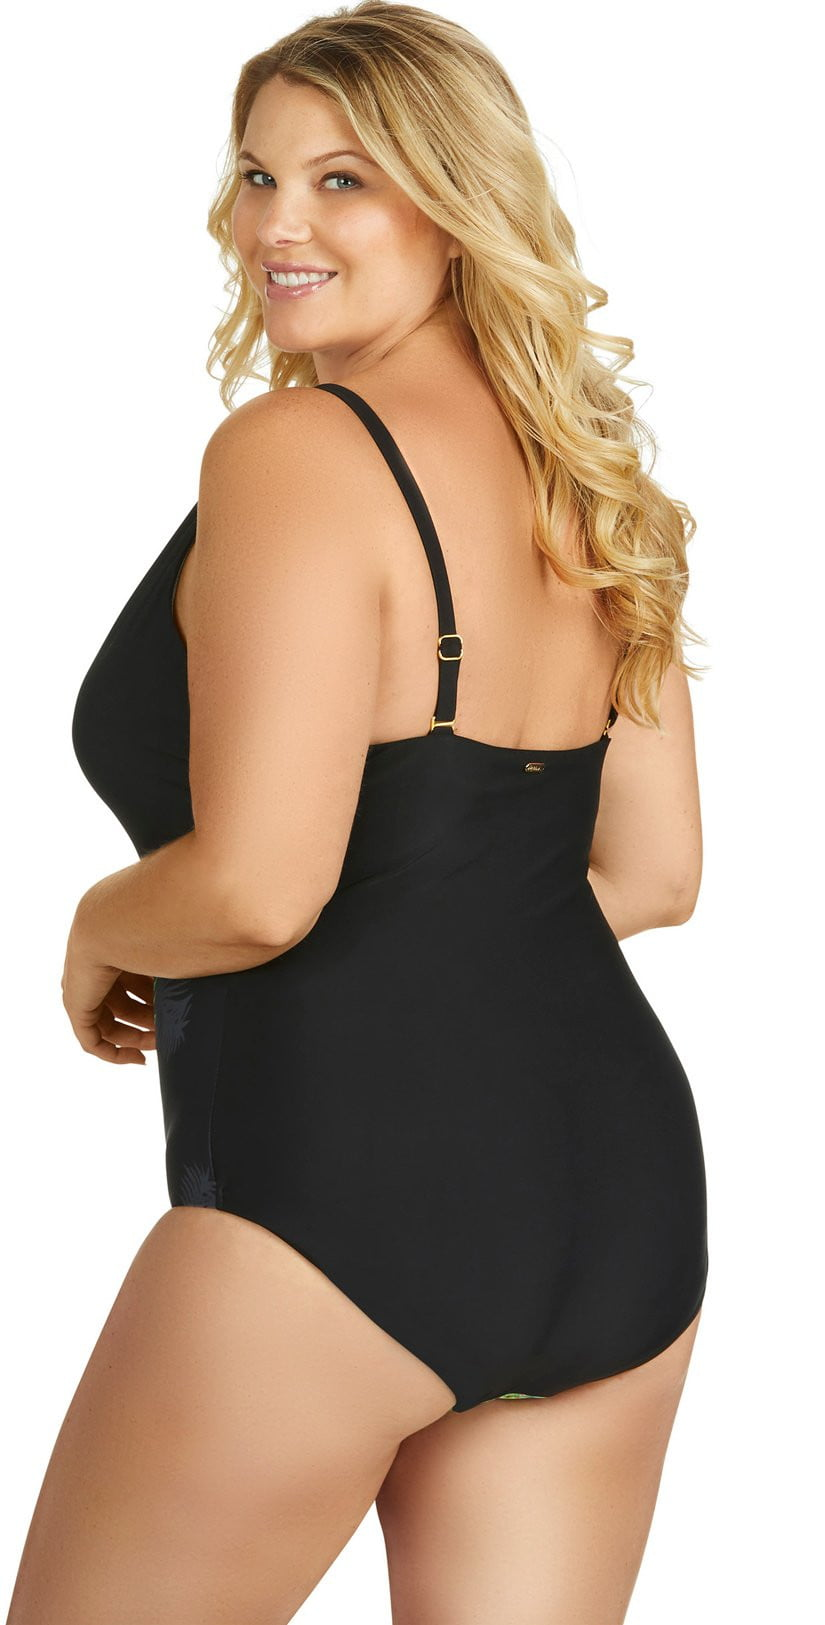 Raisins Curve Keys One Piece Swimsuit Y840284-BLK: